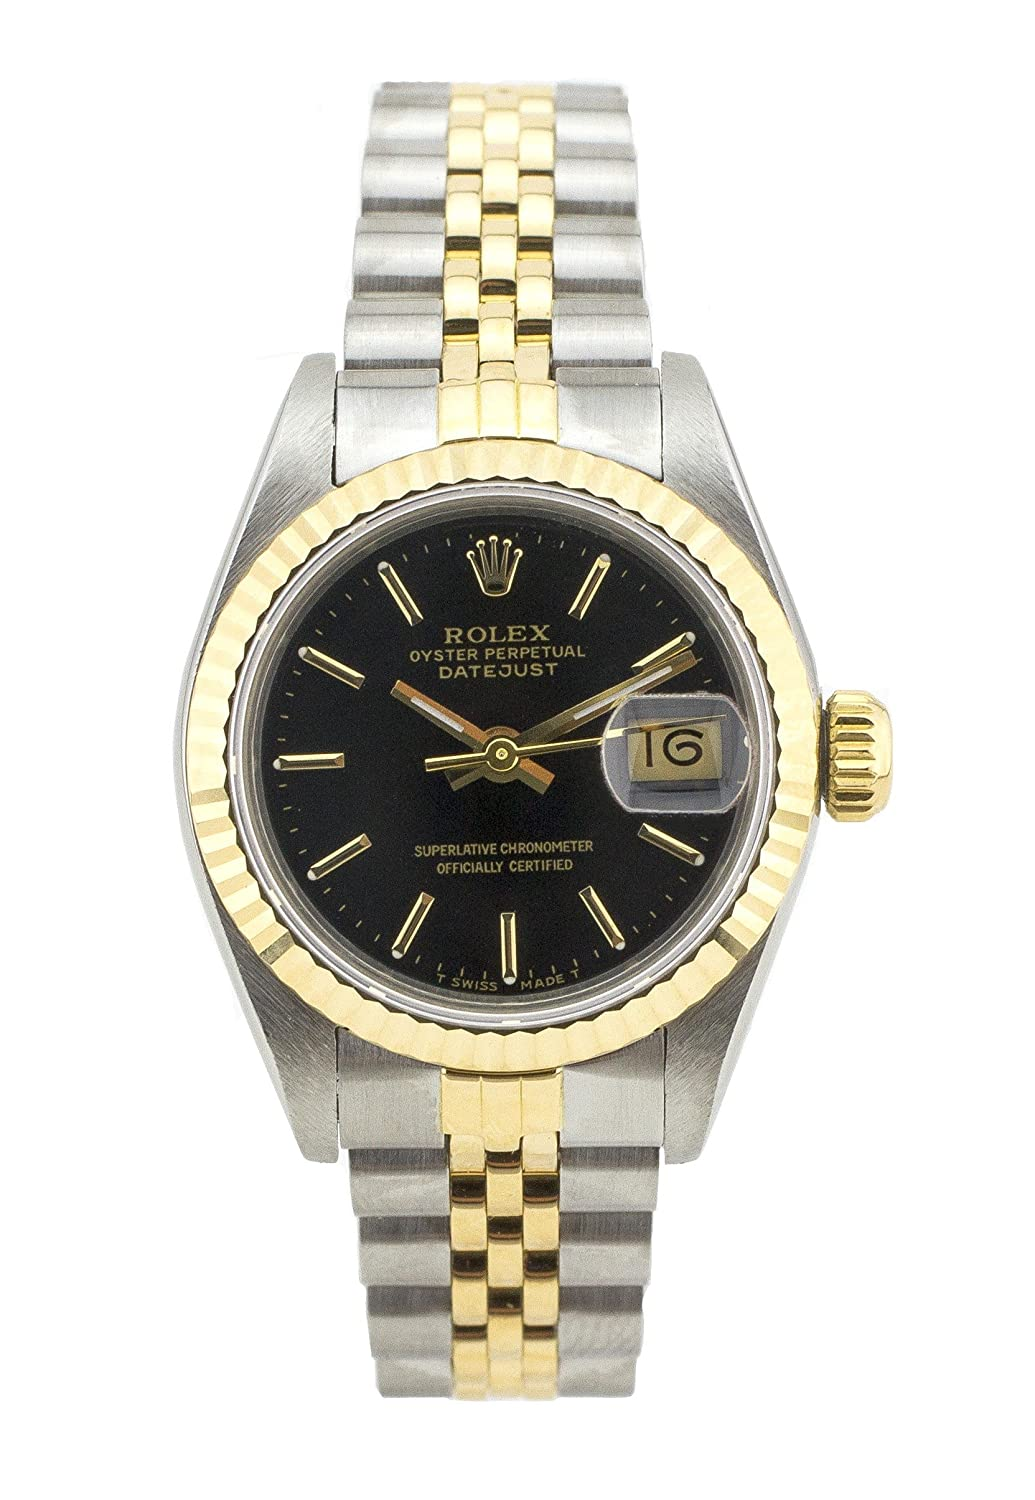 03537f52313de Amazon.com  Rolex Datejust Automatic-self-Wind Female Watch 69173  (Certified Pre-Owned)  Rolex  Watches